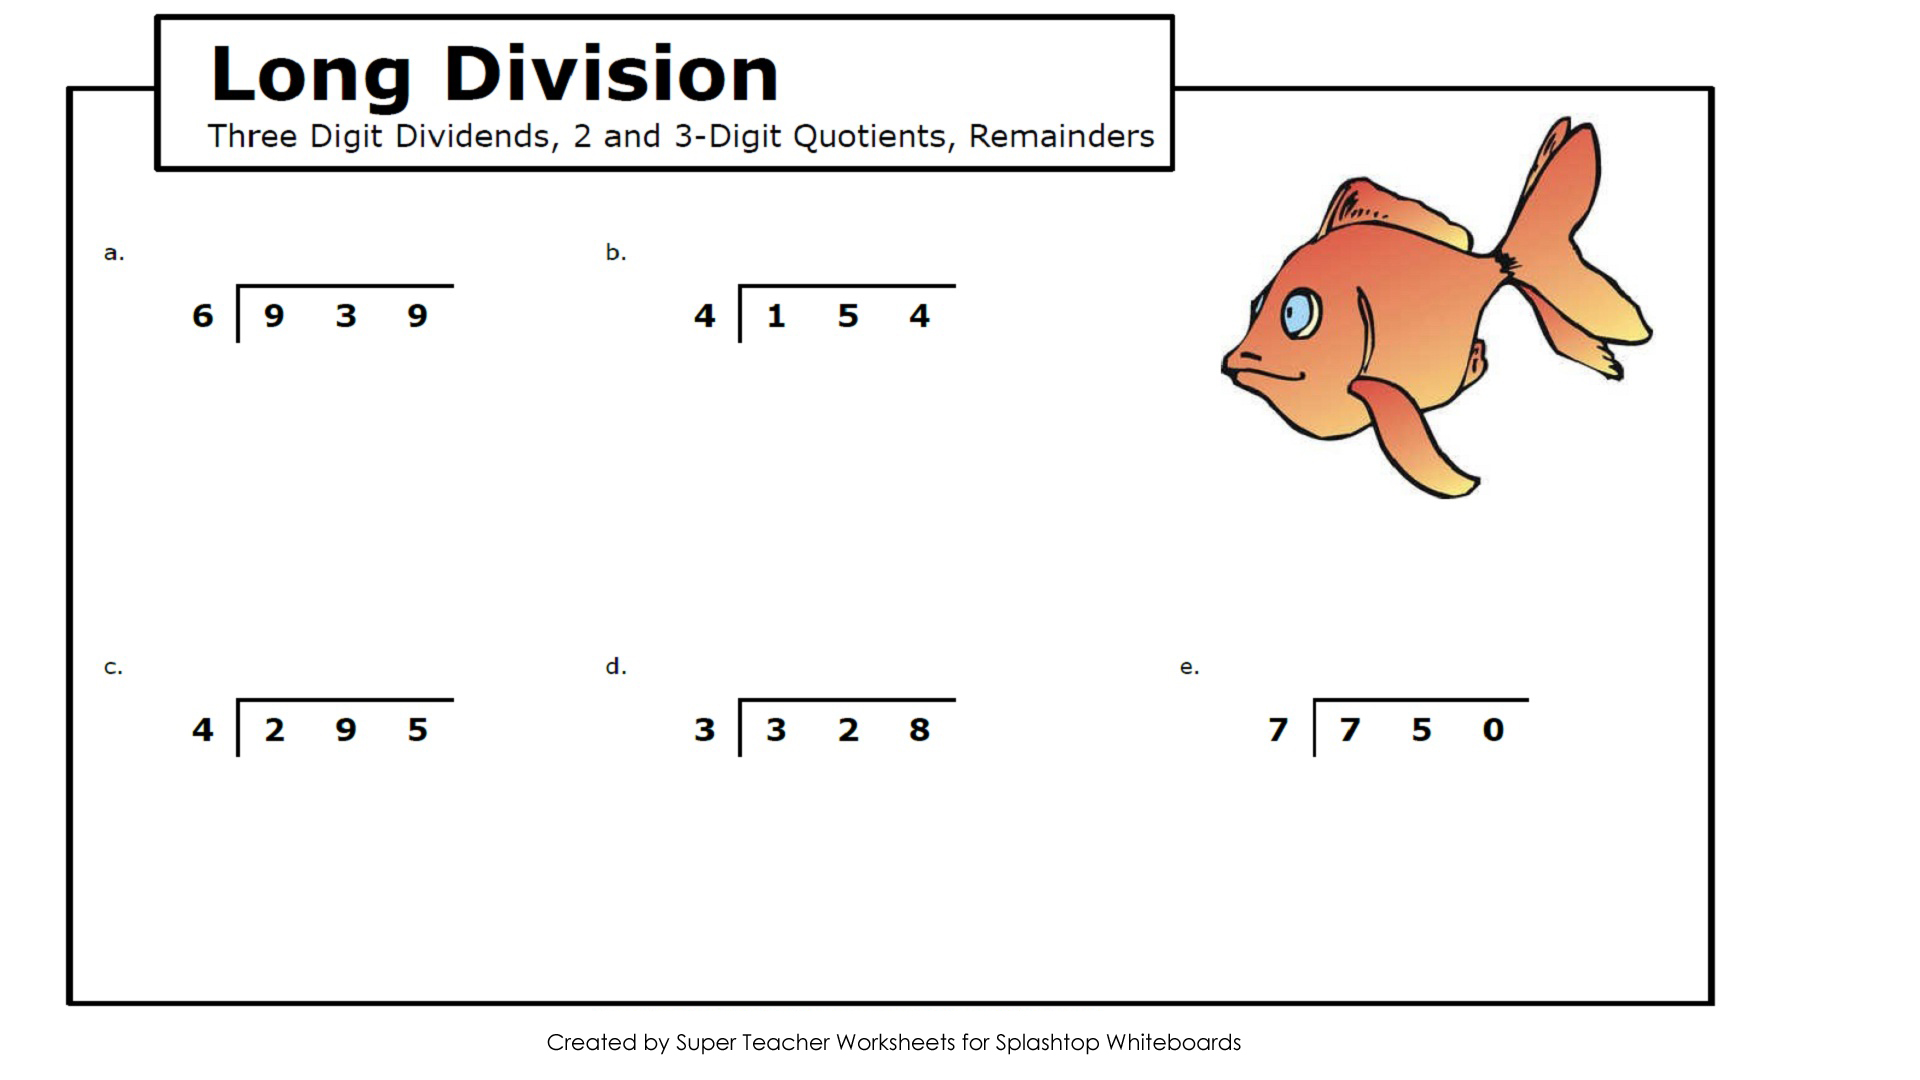 Worksheet Long Division Made Easy For Kids splashtop whiteboard background graphics long division 3 digit dividends